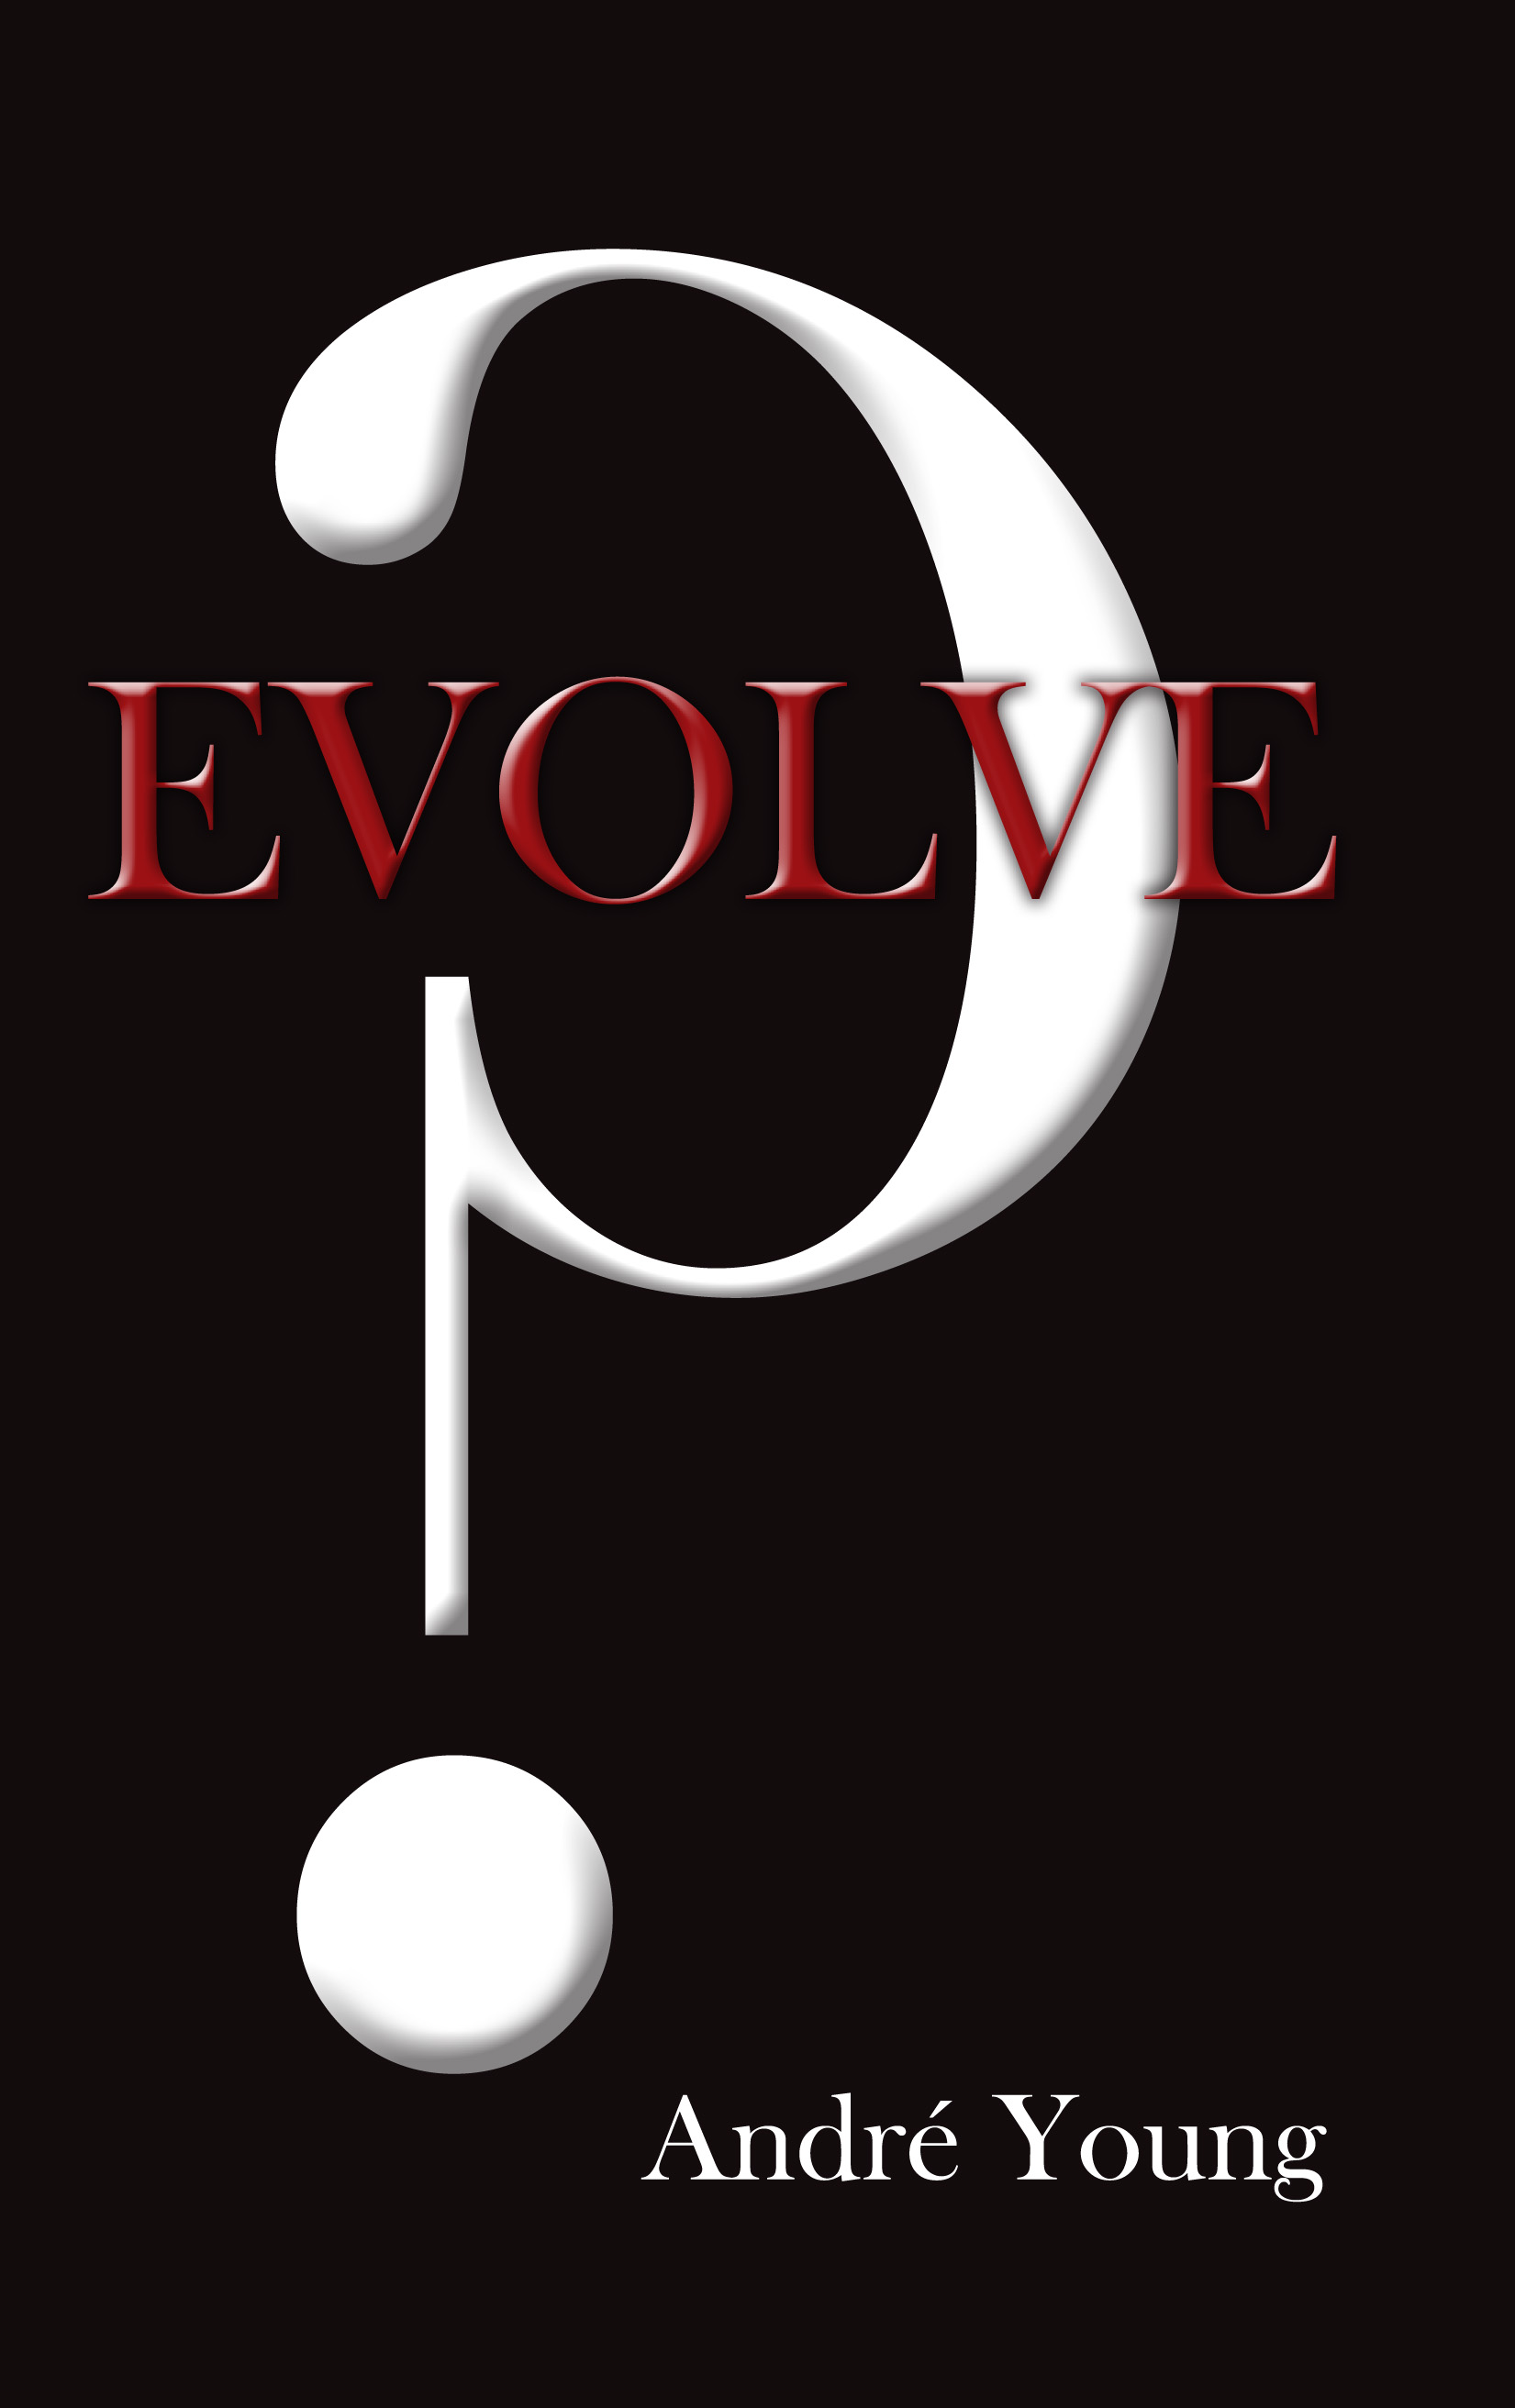 You Evolving Now is a global social club that focuses on positivity, healthy living, personal development, self improvement and life enrichment to help you improve yourself and get more our of life. We are based in Berks County and work with loacl colleges like Kutztown and Alvernia!